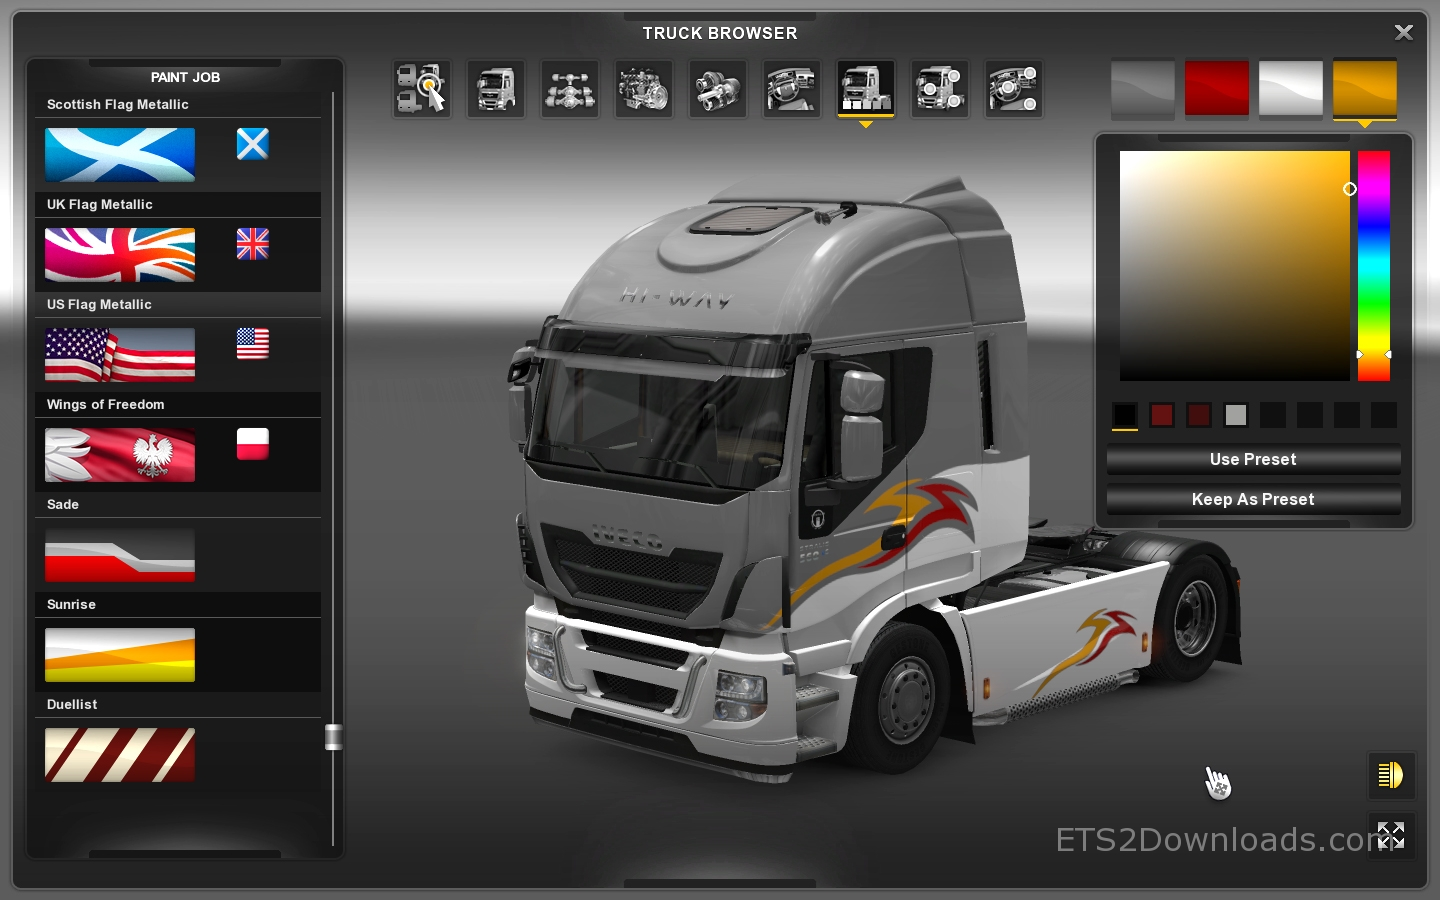 truck-browser-ets2